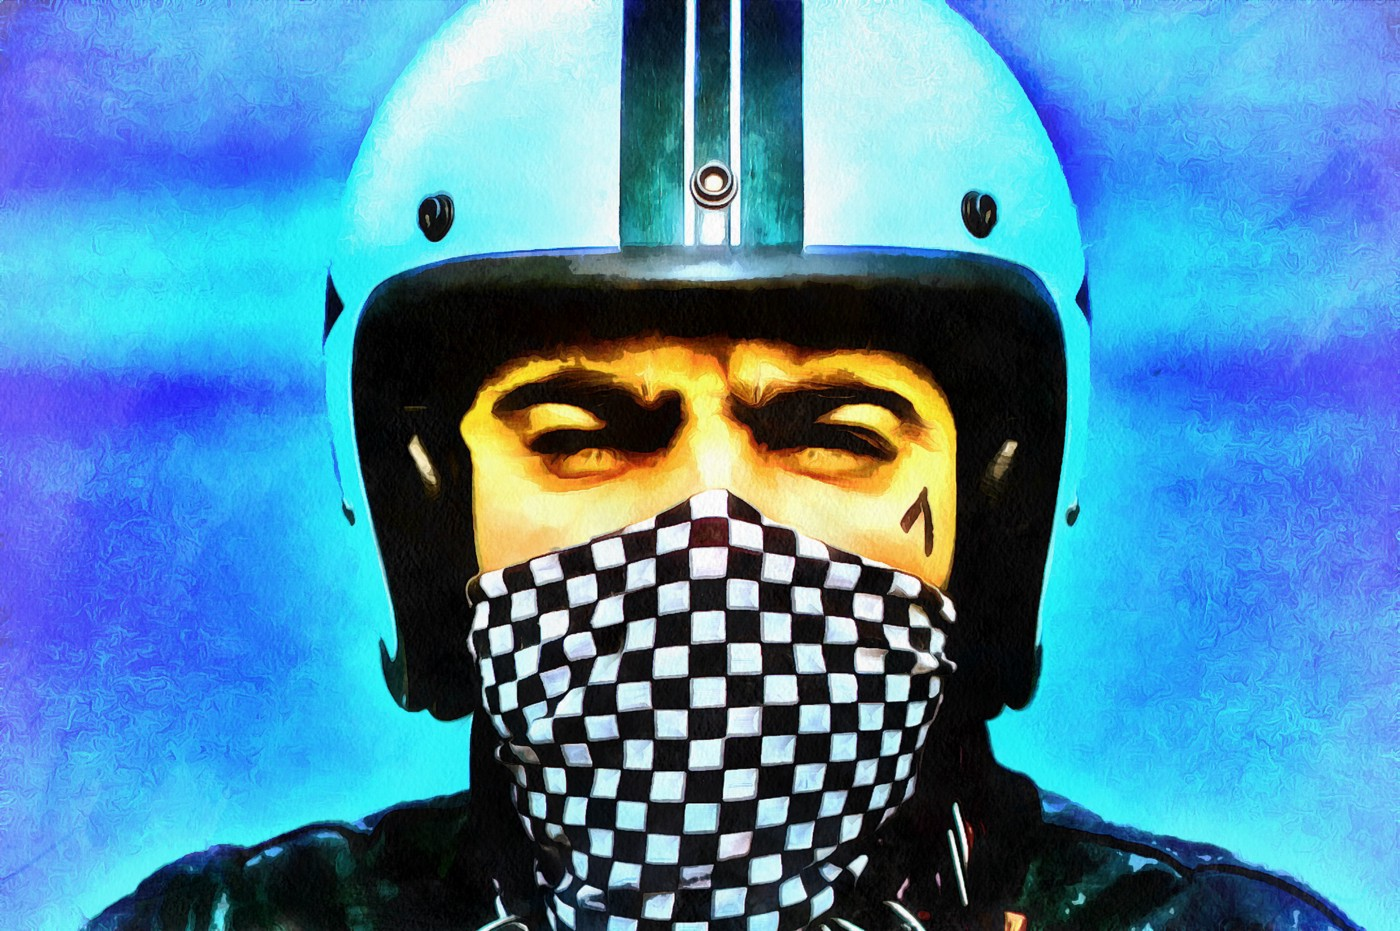 Man wearing motorcycle helmet and face mask